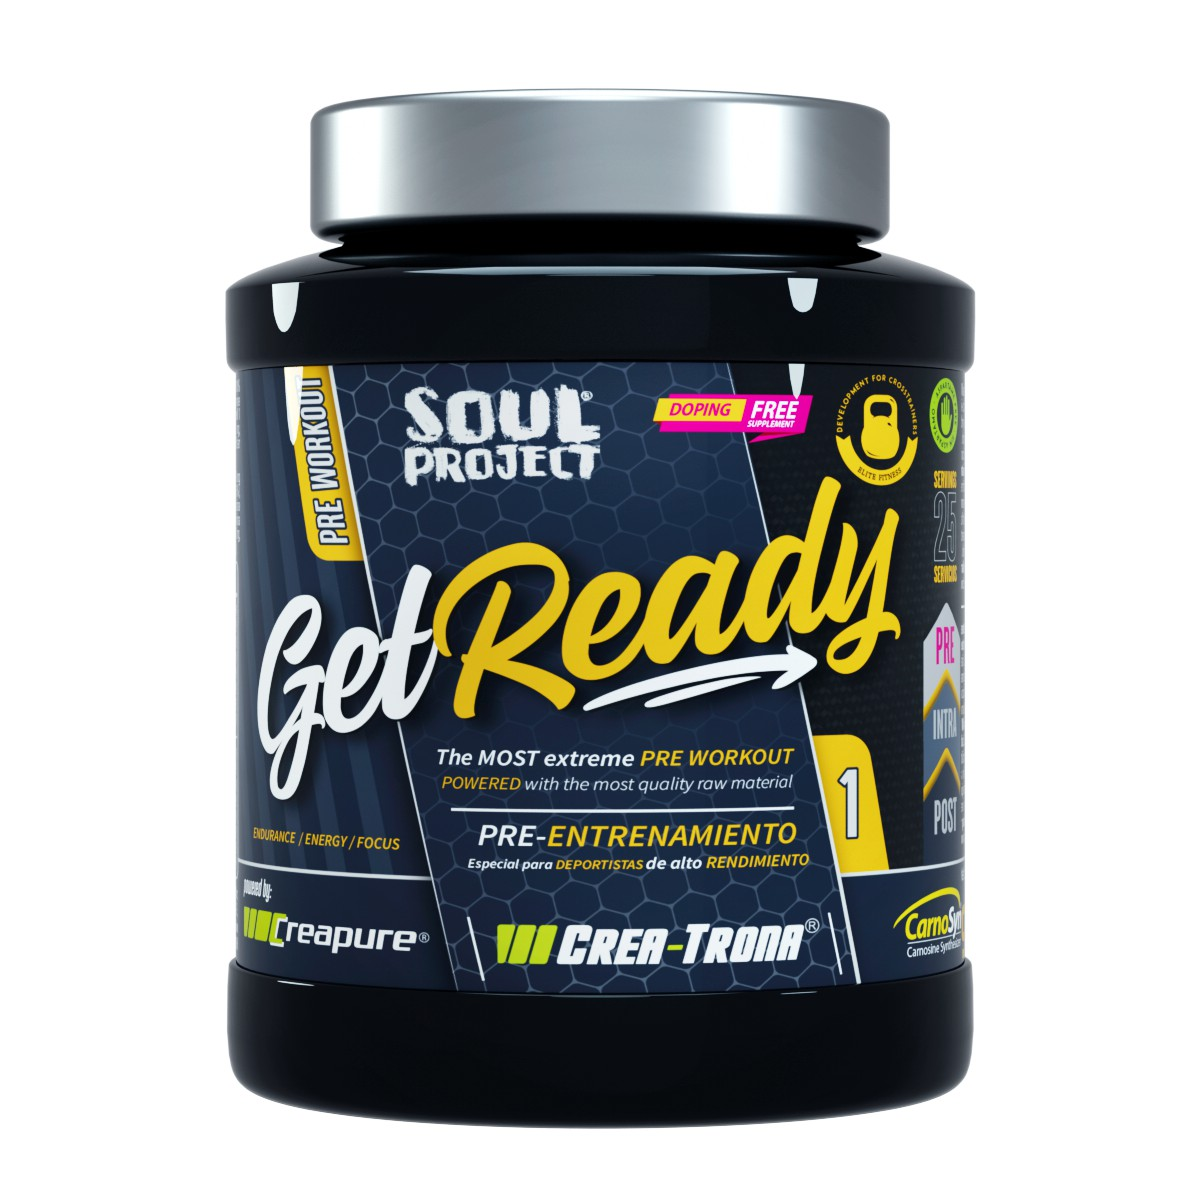 GET READY PRE-TRAINING PRE-ENTRENAMIENTO Soul Project